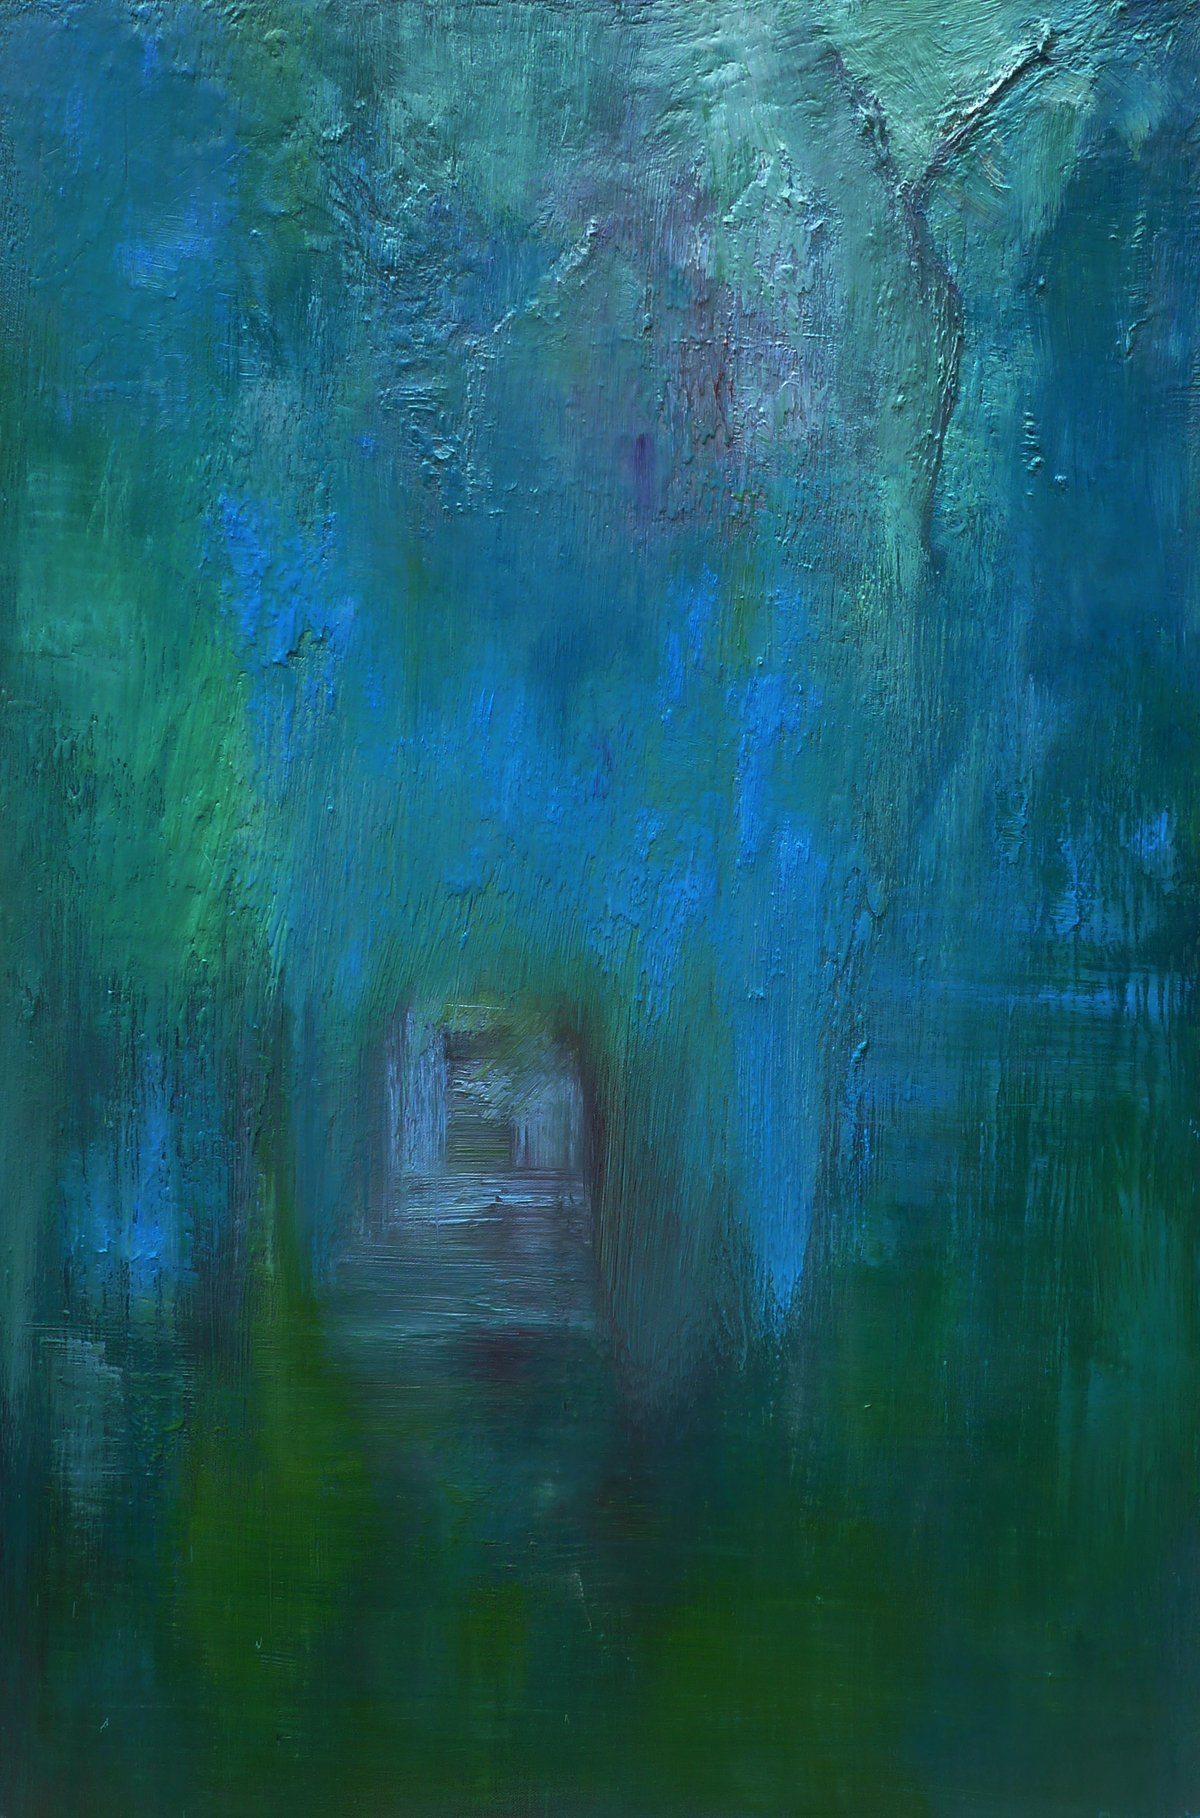 Silent Journey - Oil on Canvas - 97cm x 66cm